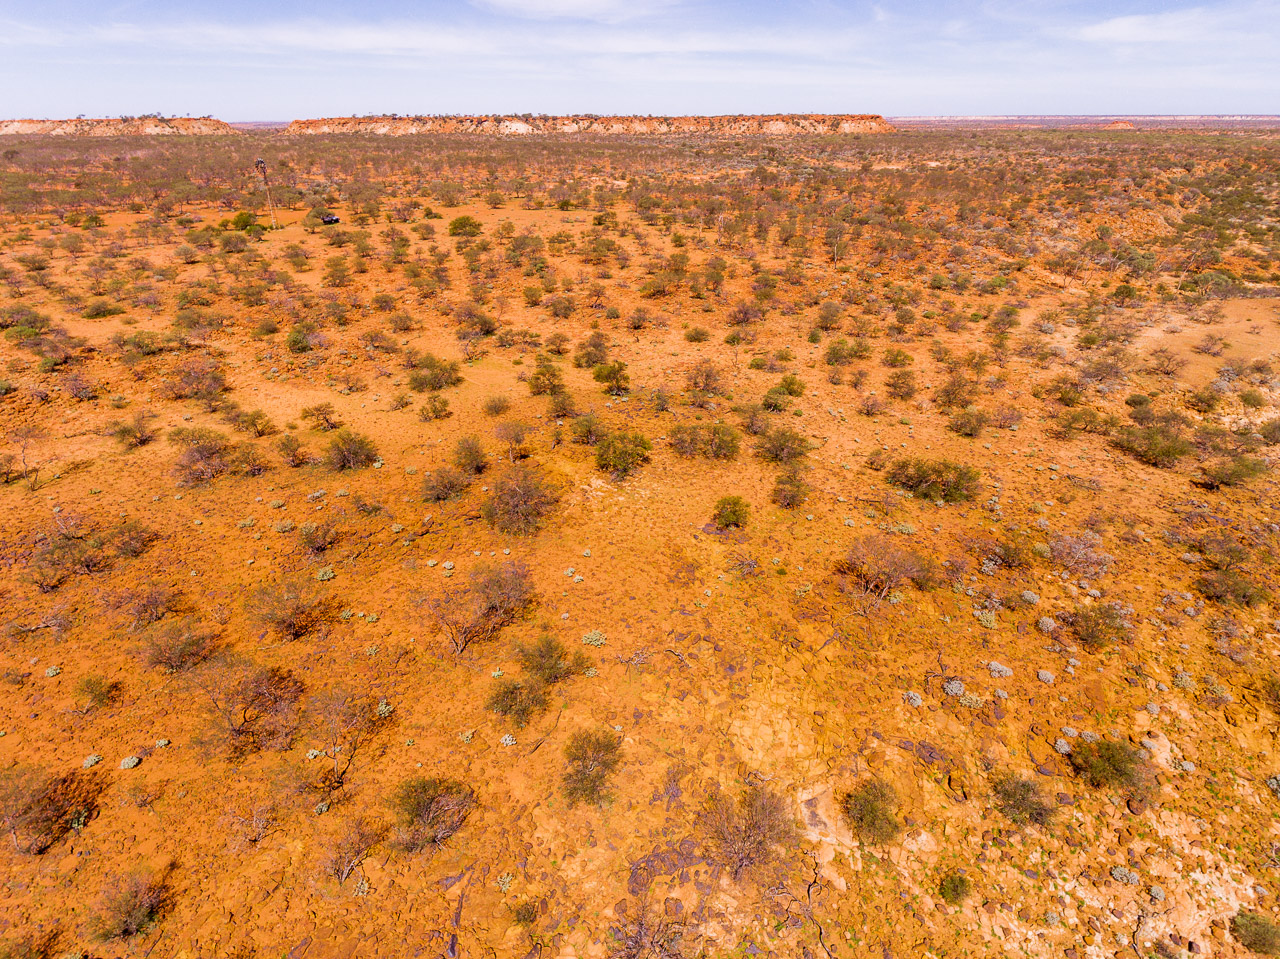 Drone image across the plains at Carey Downs Station, WA